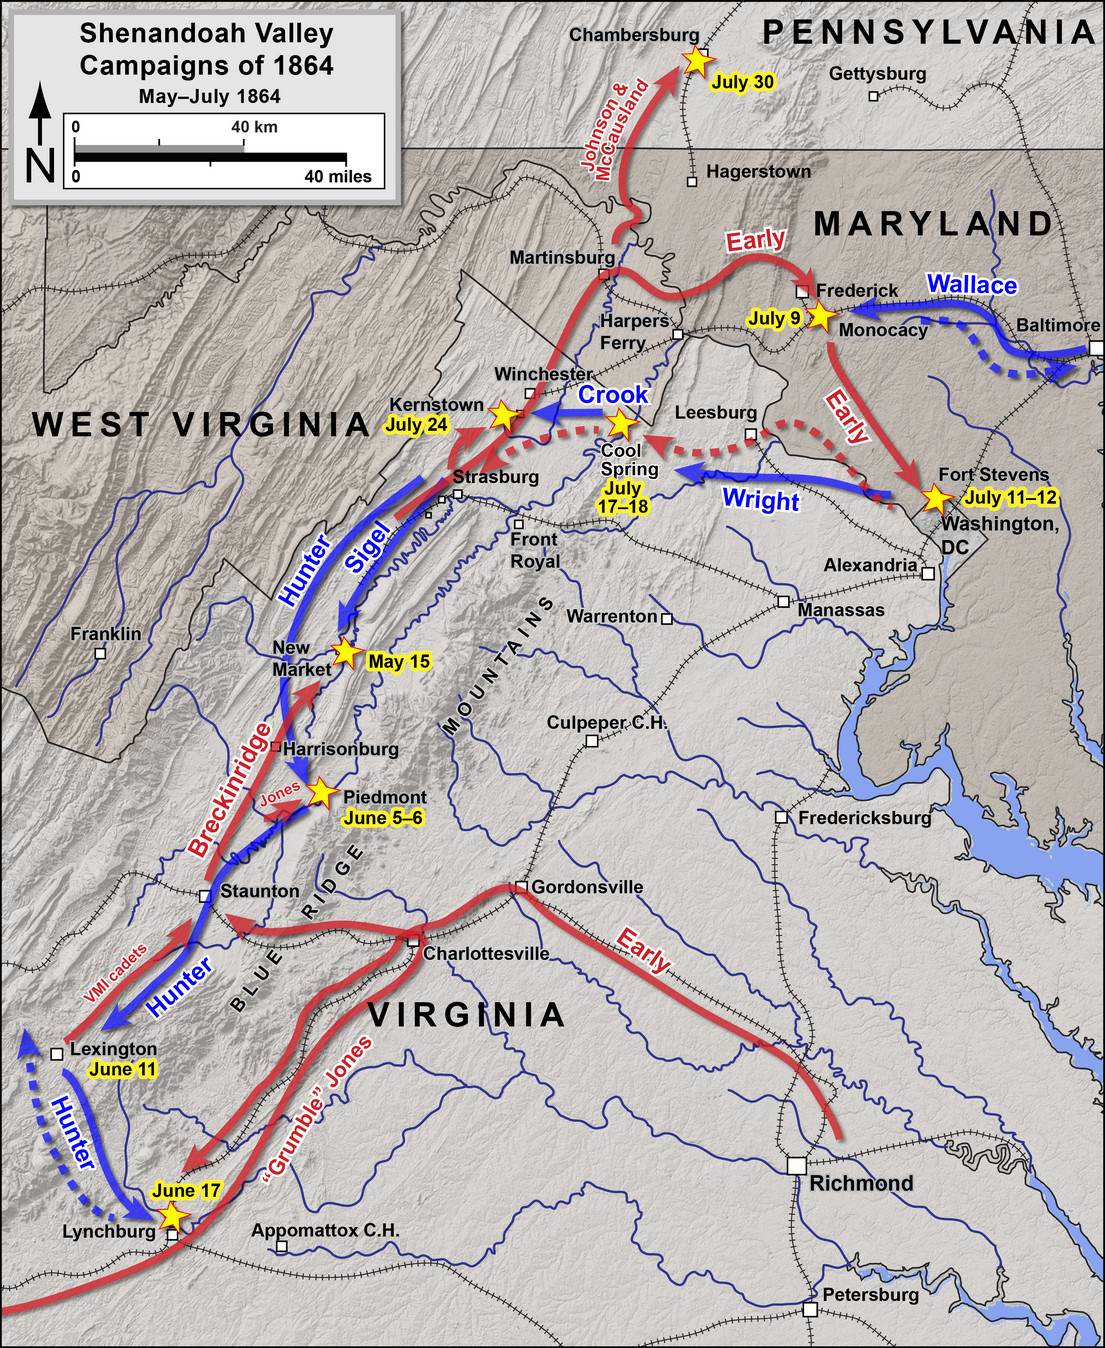 1864 Shenandoah Valley Campaign Map.jpg